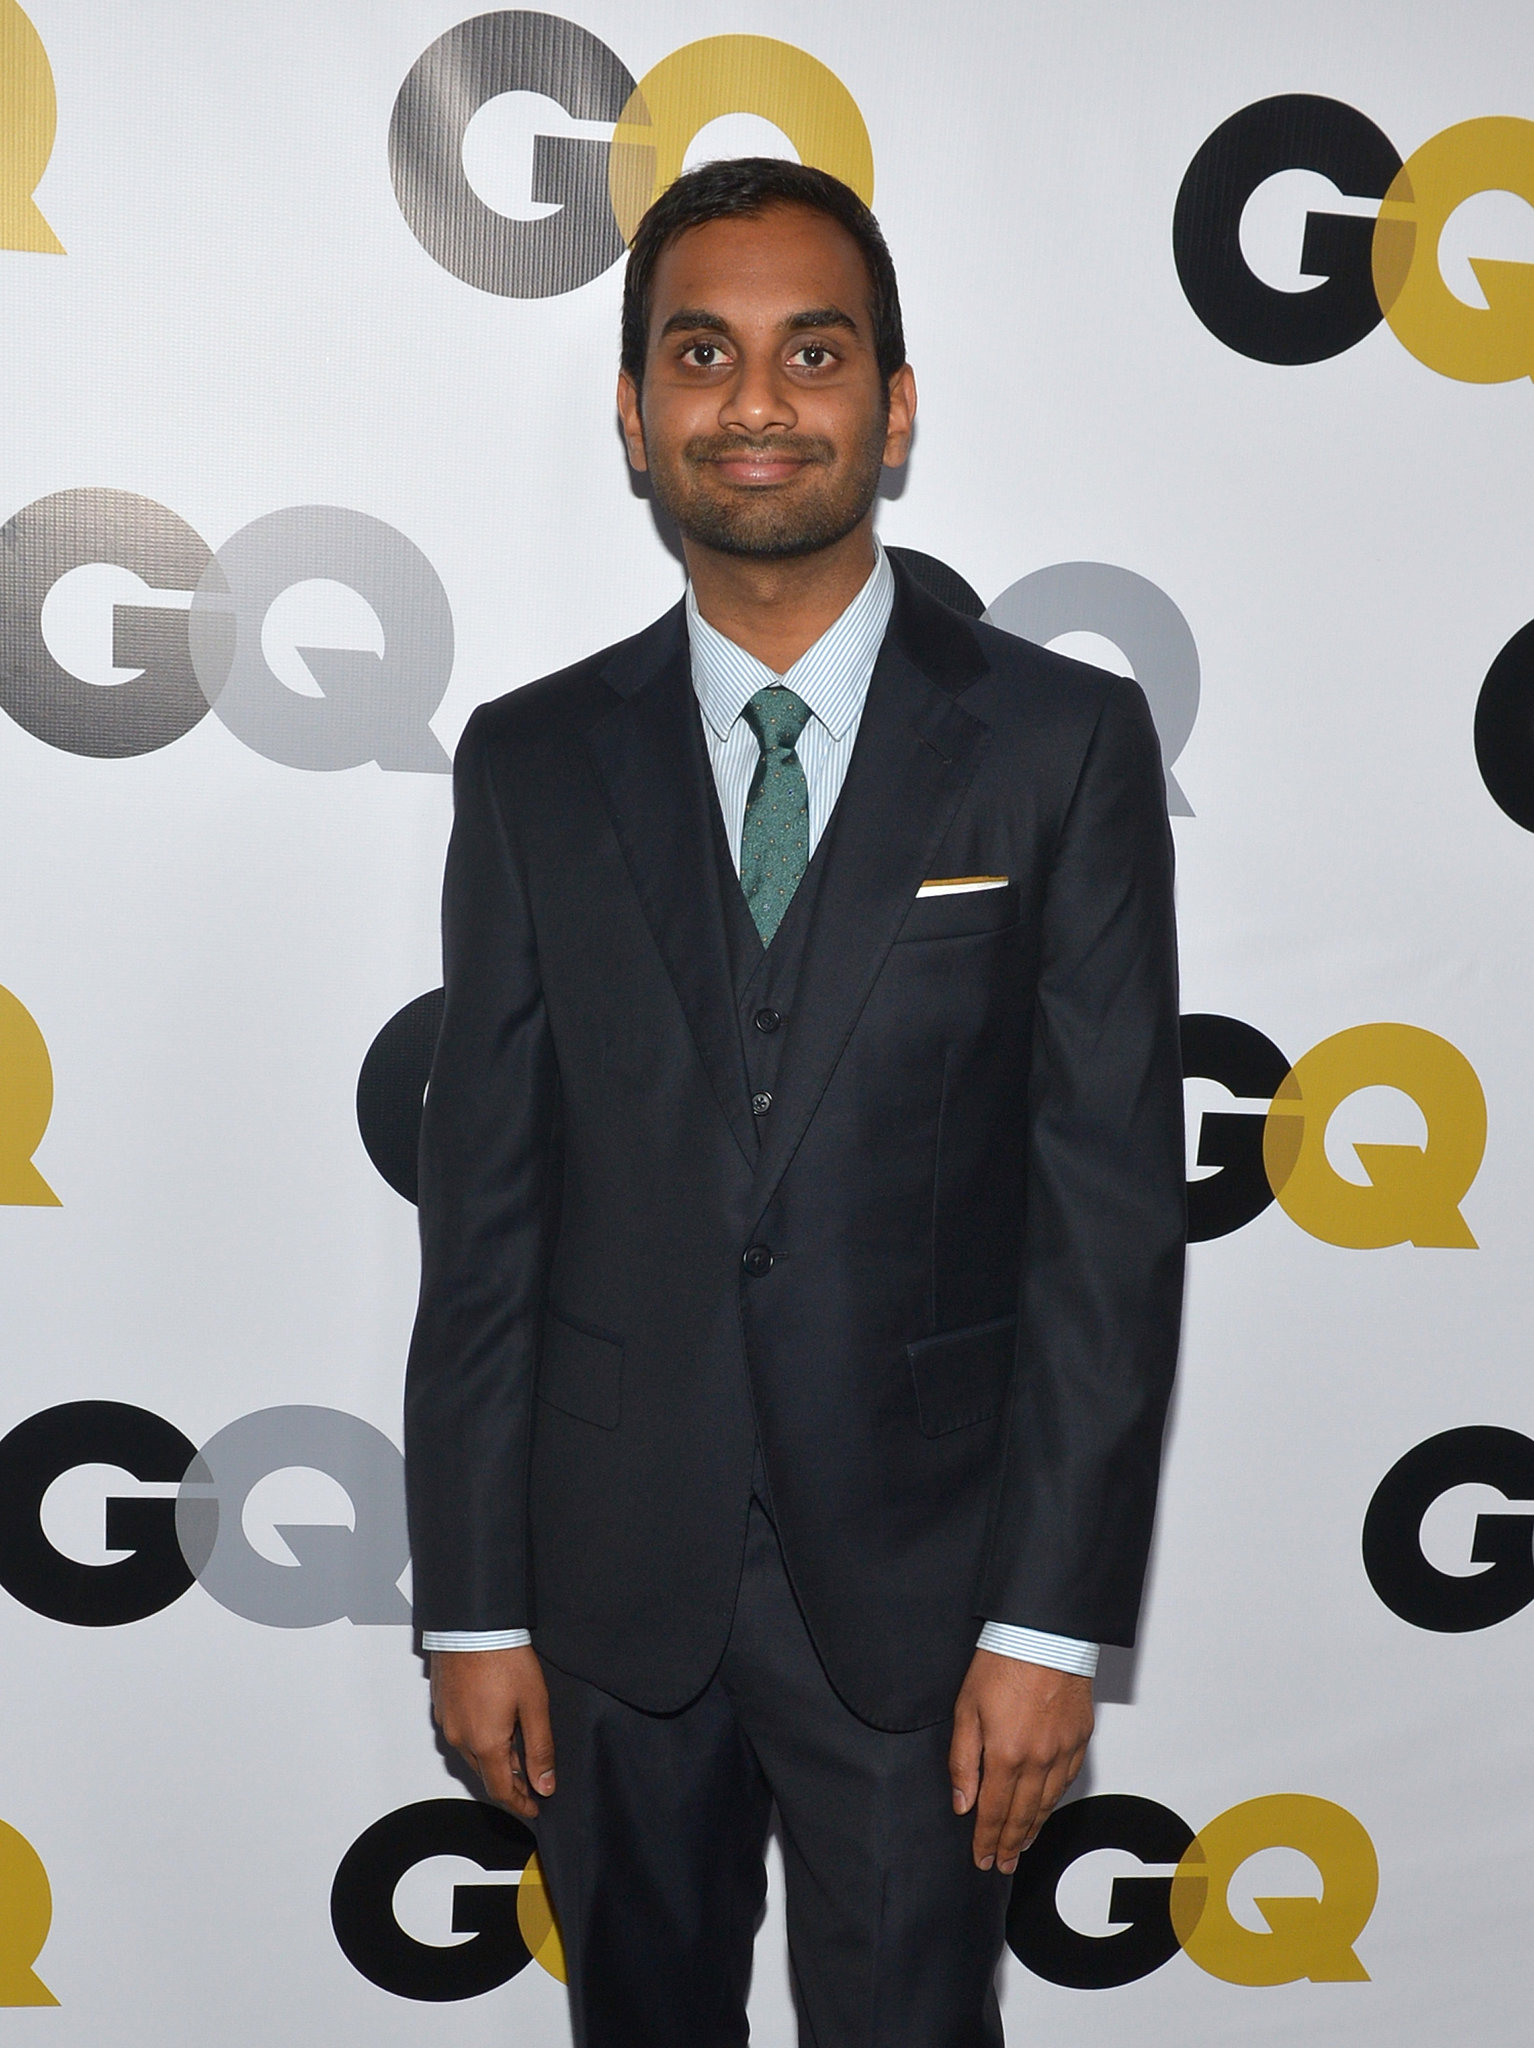 Aziz Ansari attended the GQ Men of the Year party.